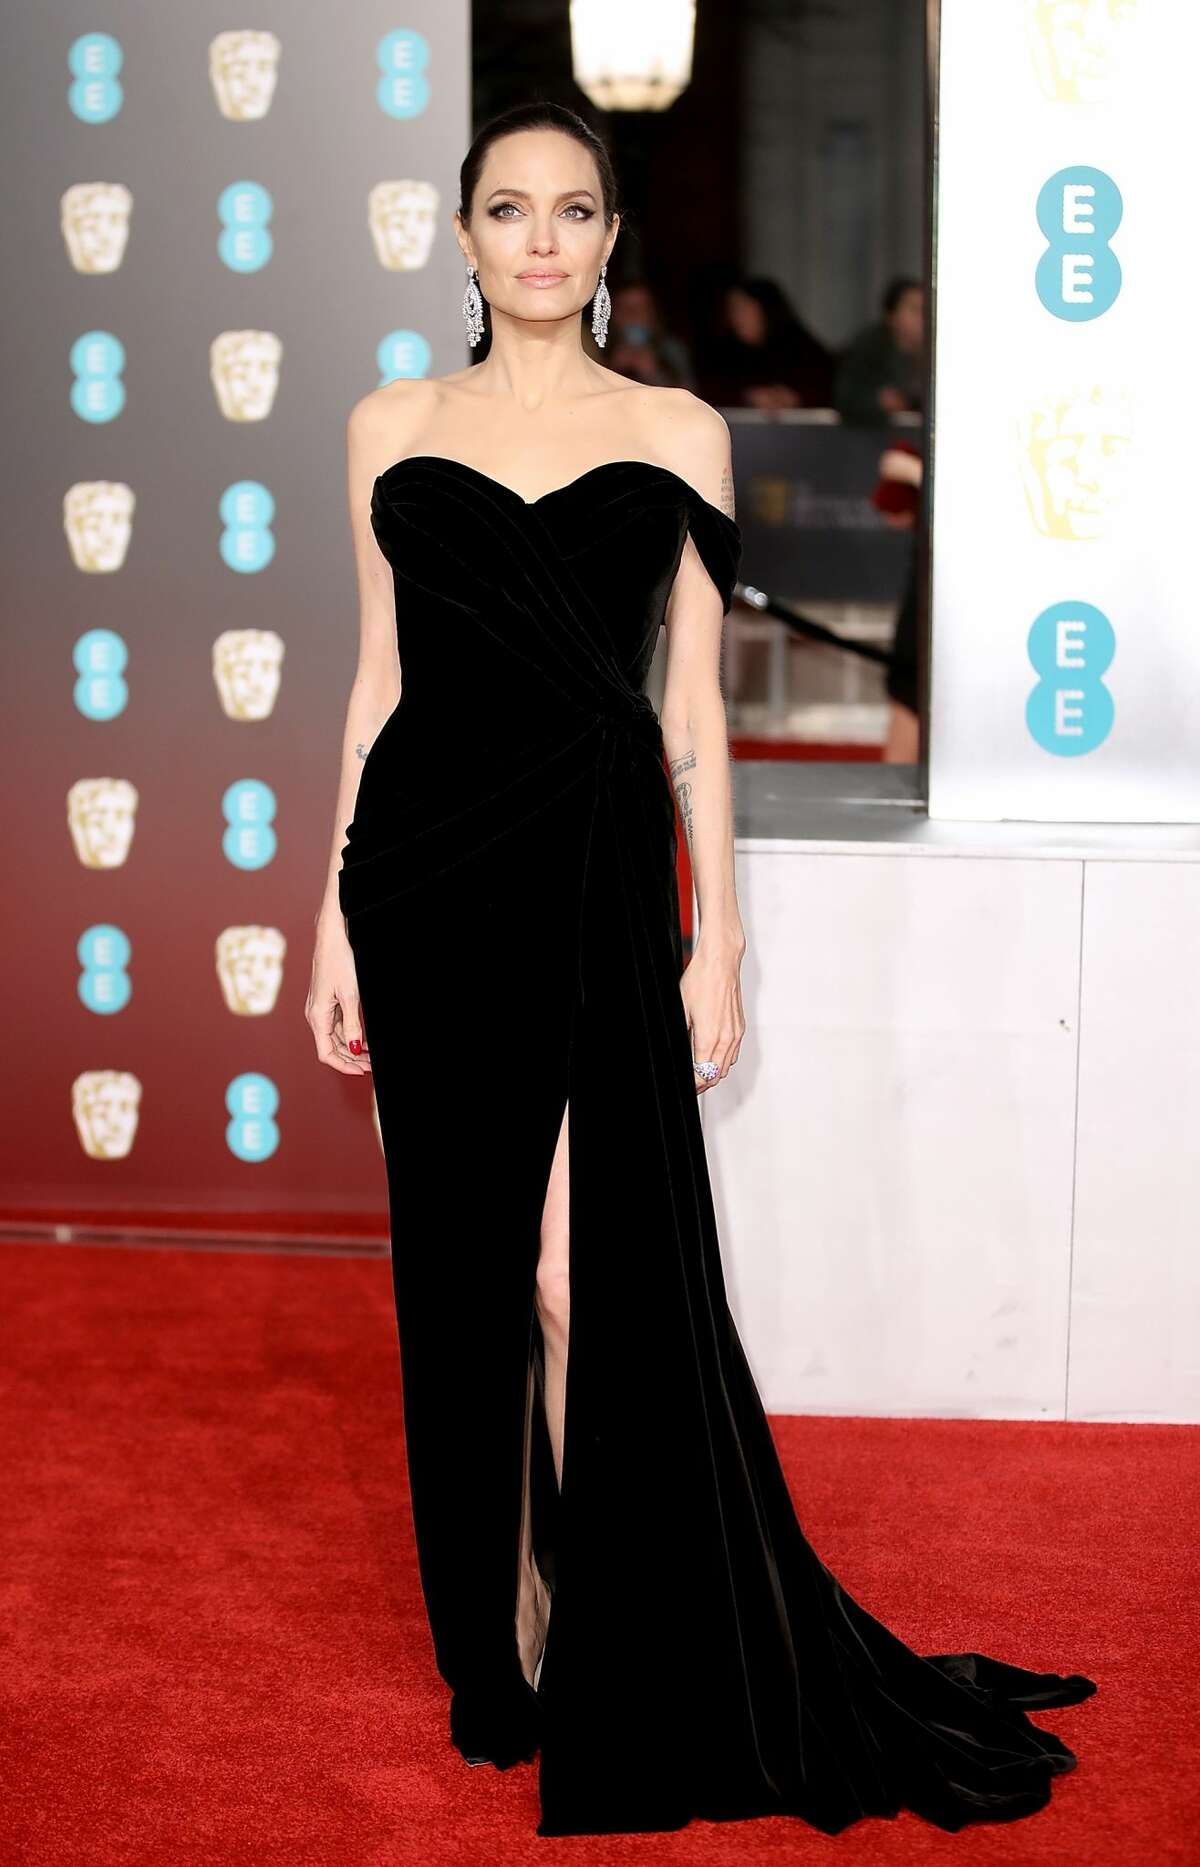 Best: Angelina Jolie doesn't stray too far from what she does best. Sweetheart necklines and slits.